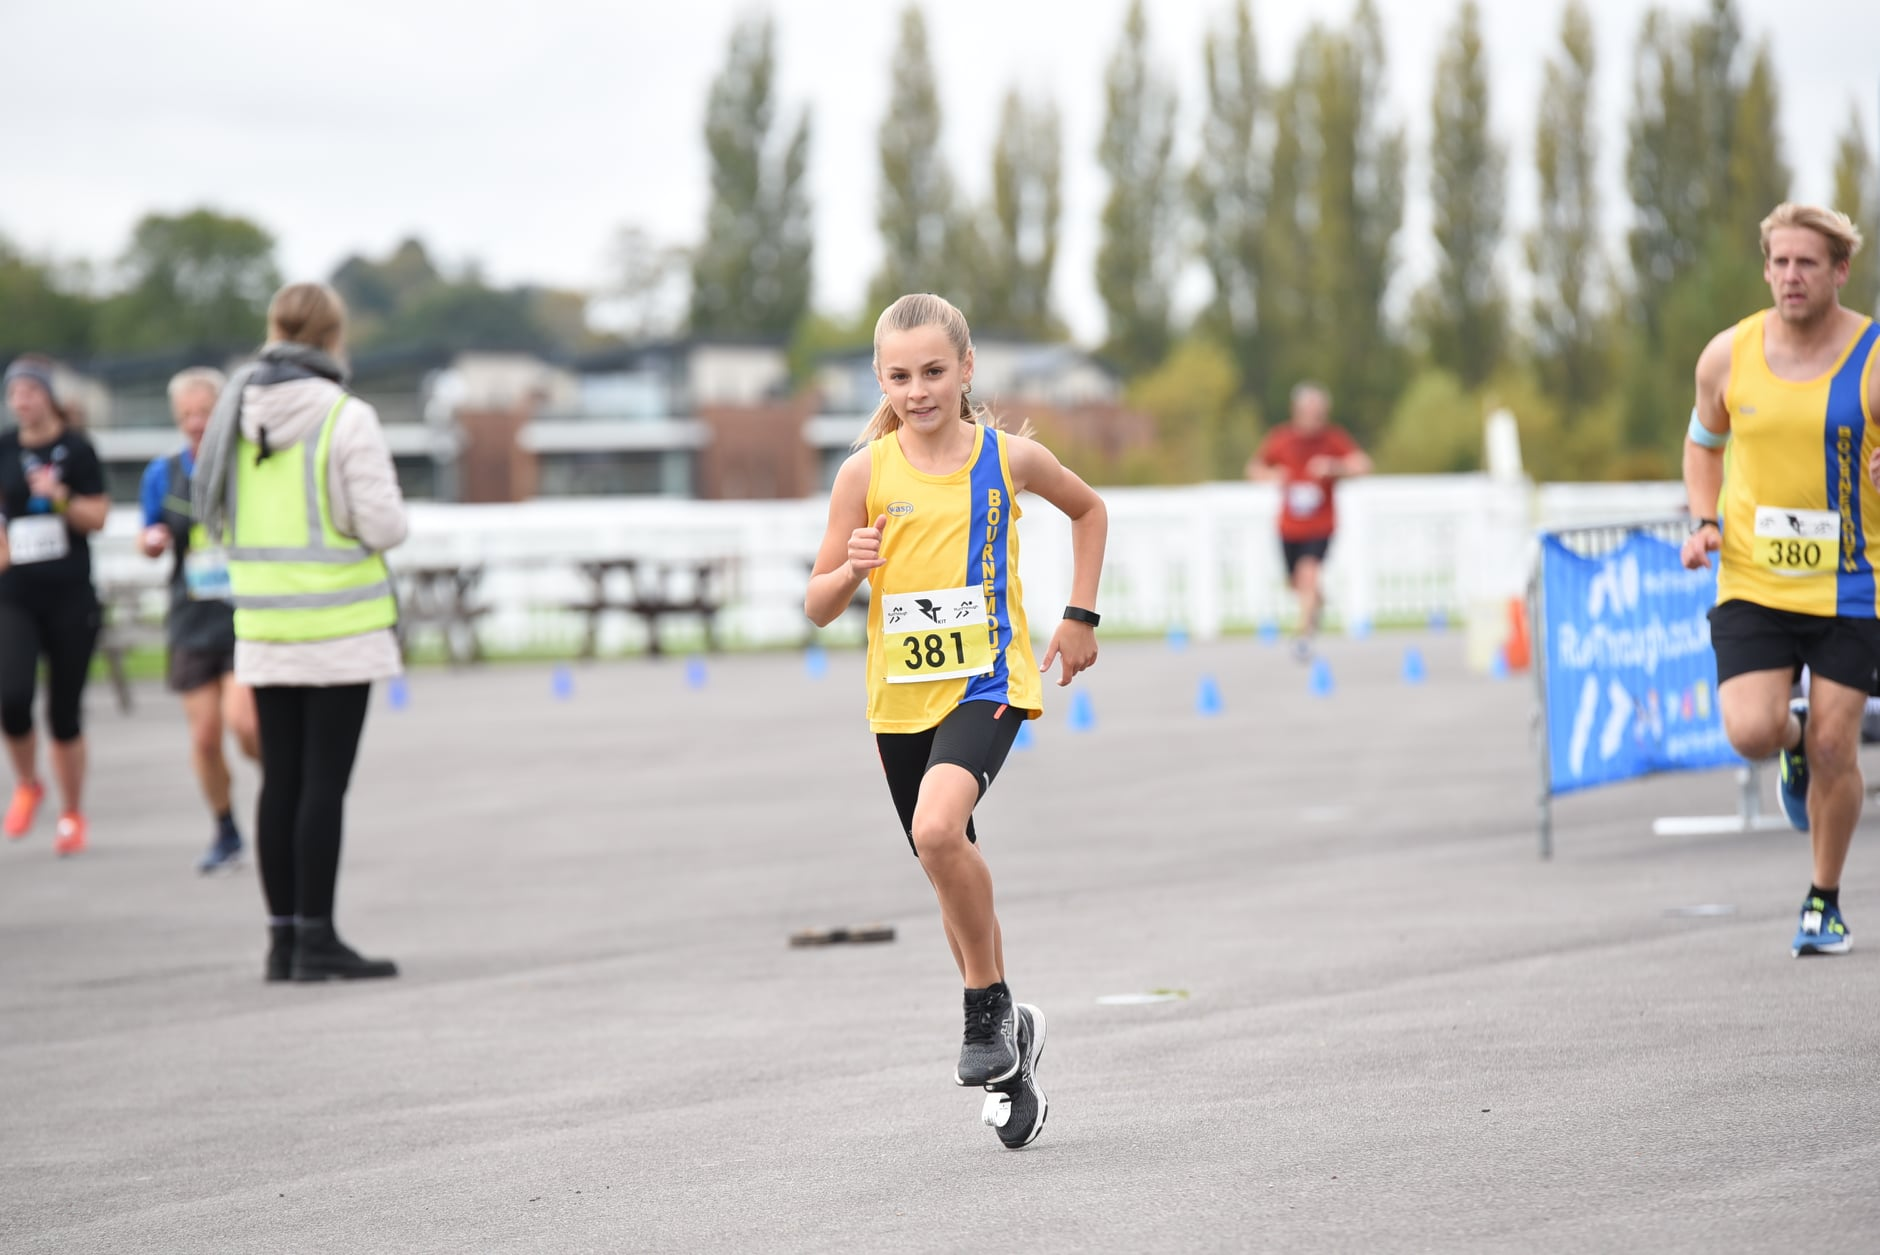 Speed runs in the family for Isabel and Phil at Newbury Racecourse 5k